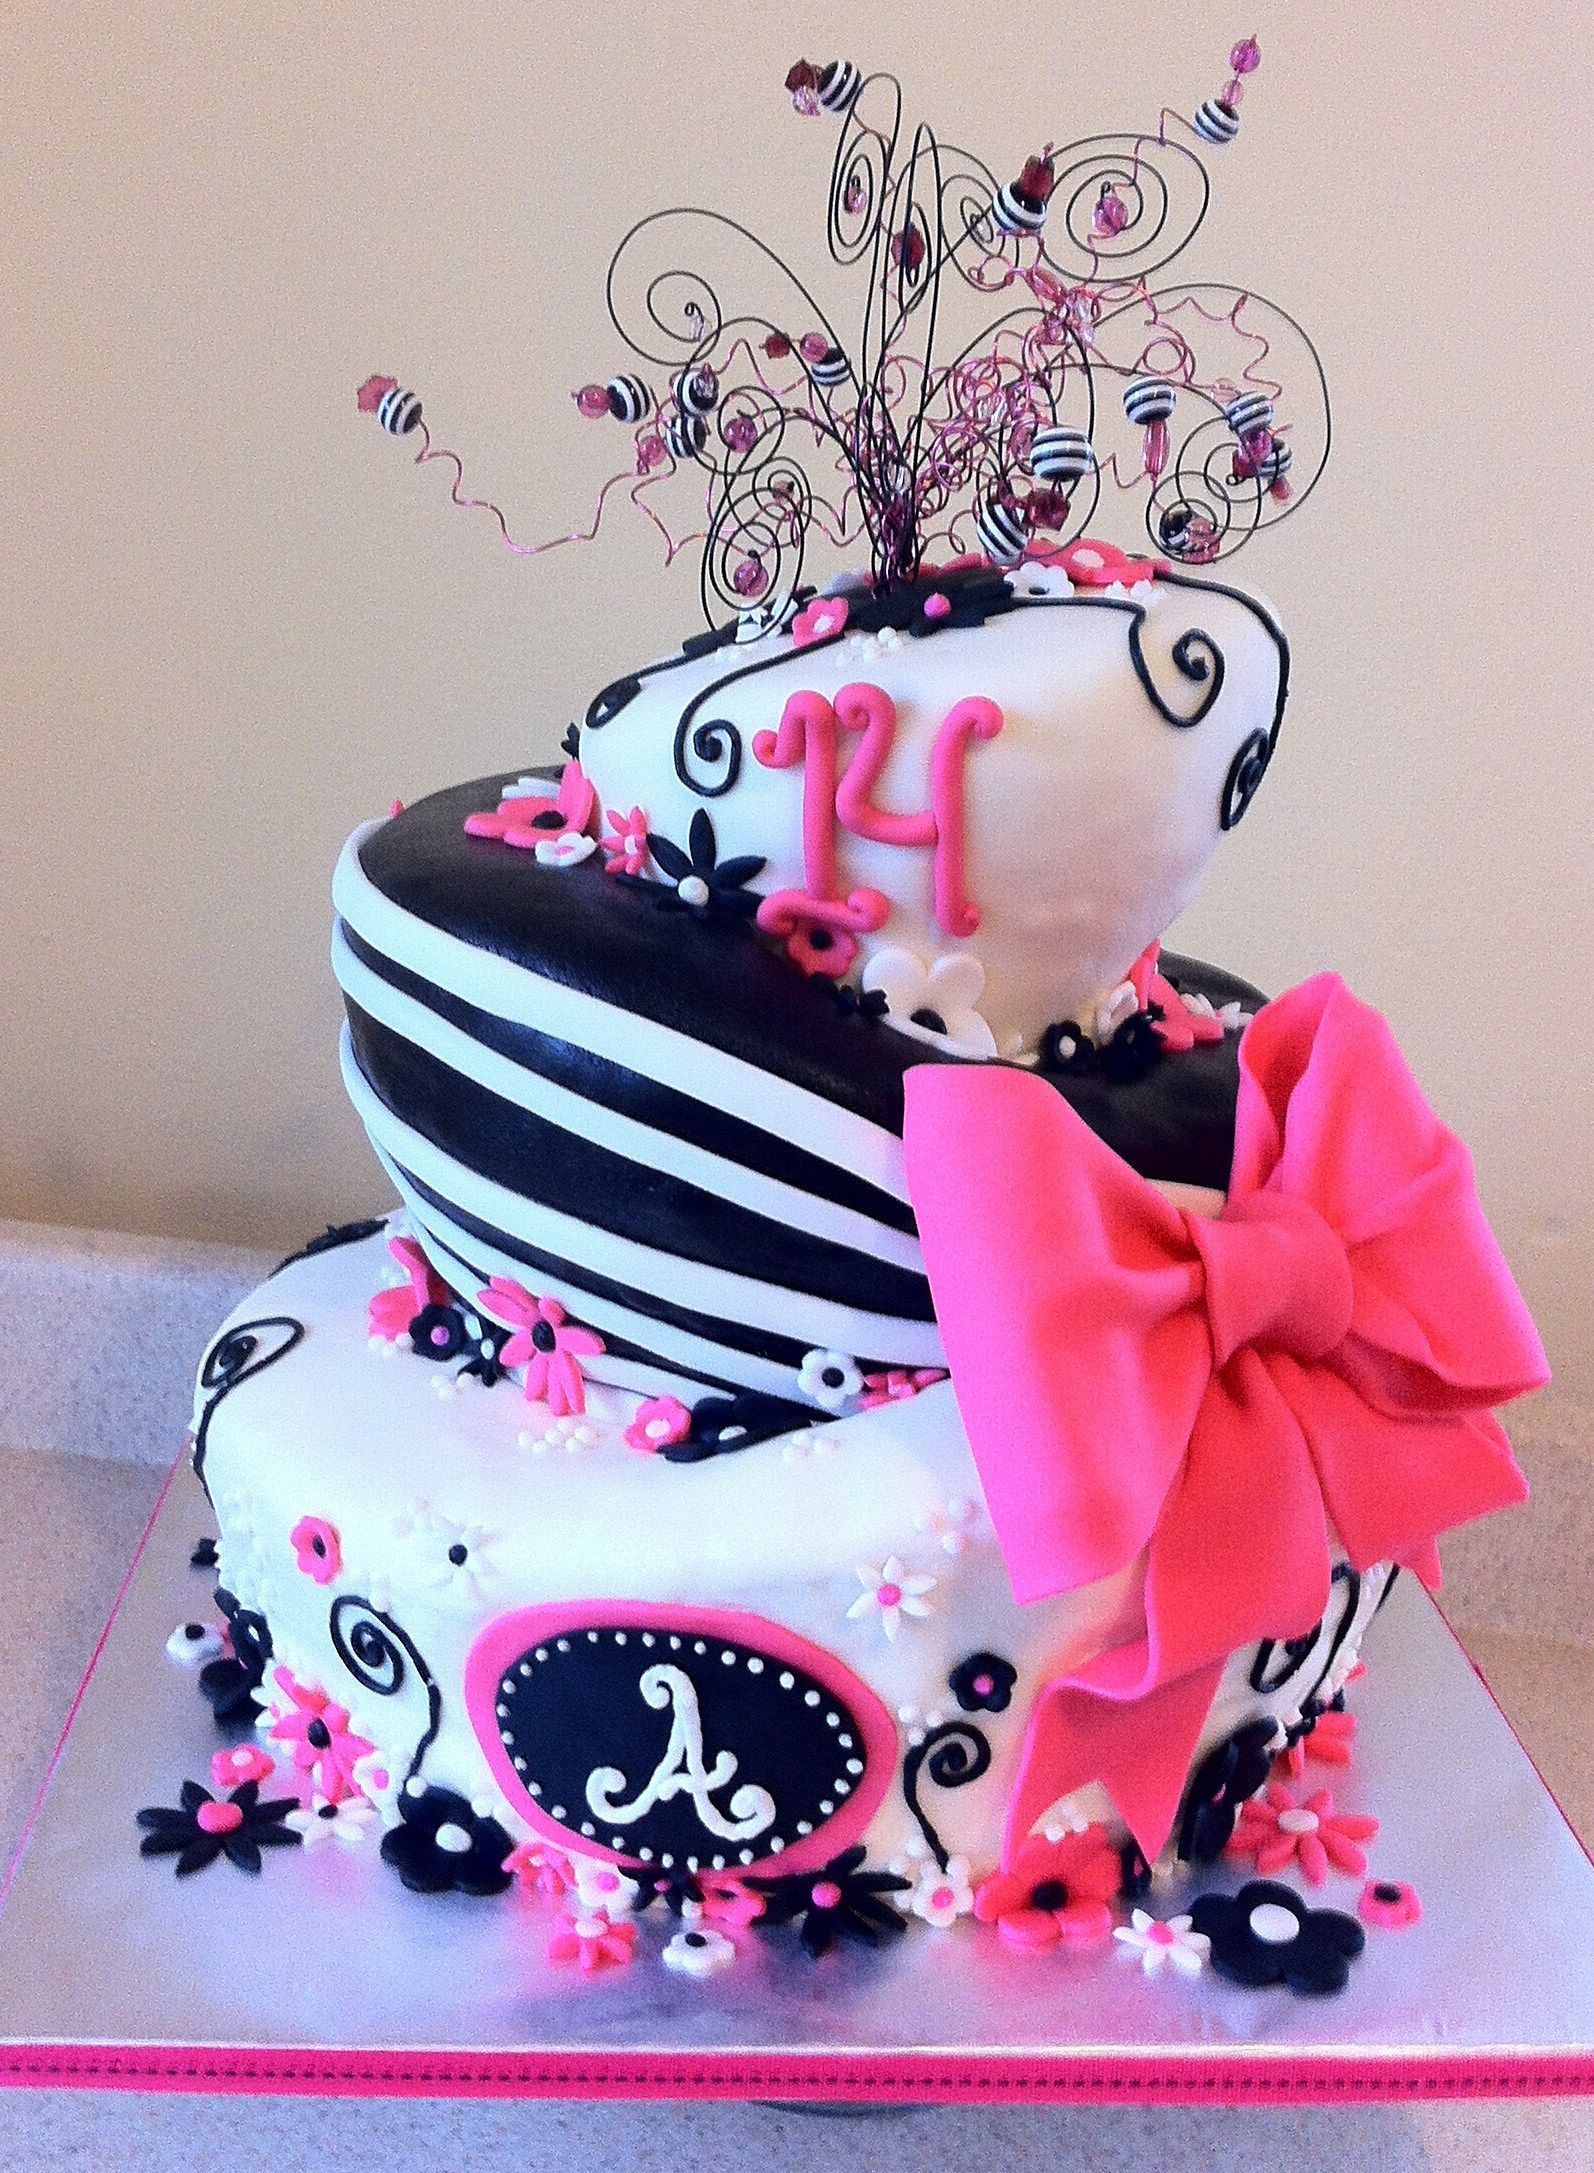 cakes for girls birthdays | ... black and white topsy turvy 14 birthday cake – Lolos Cakes & Sweets